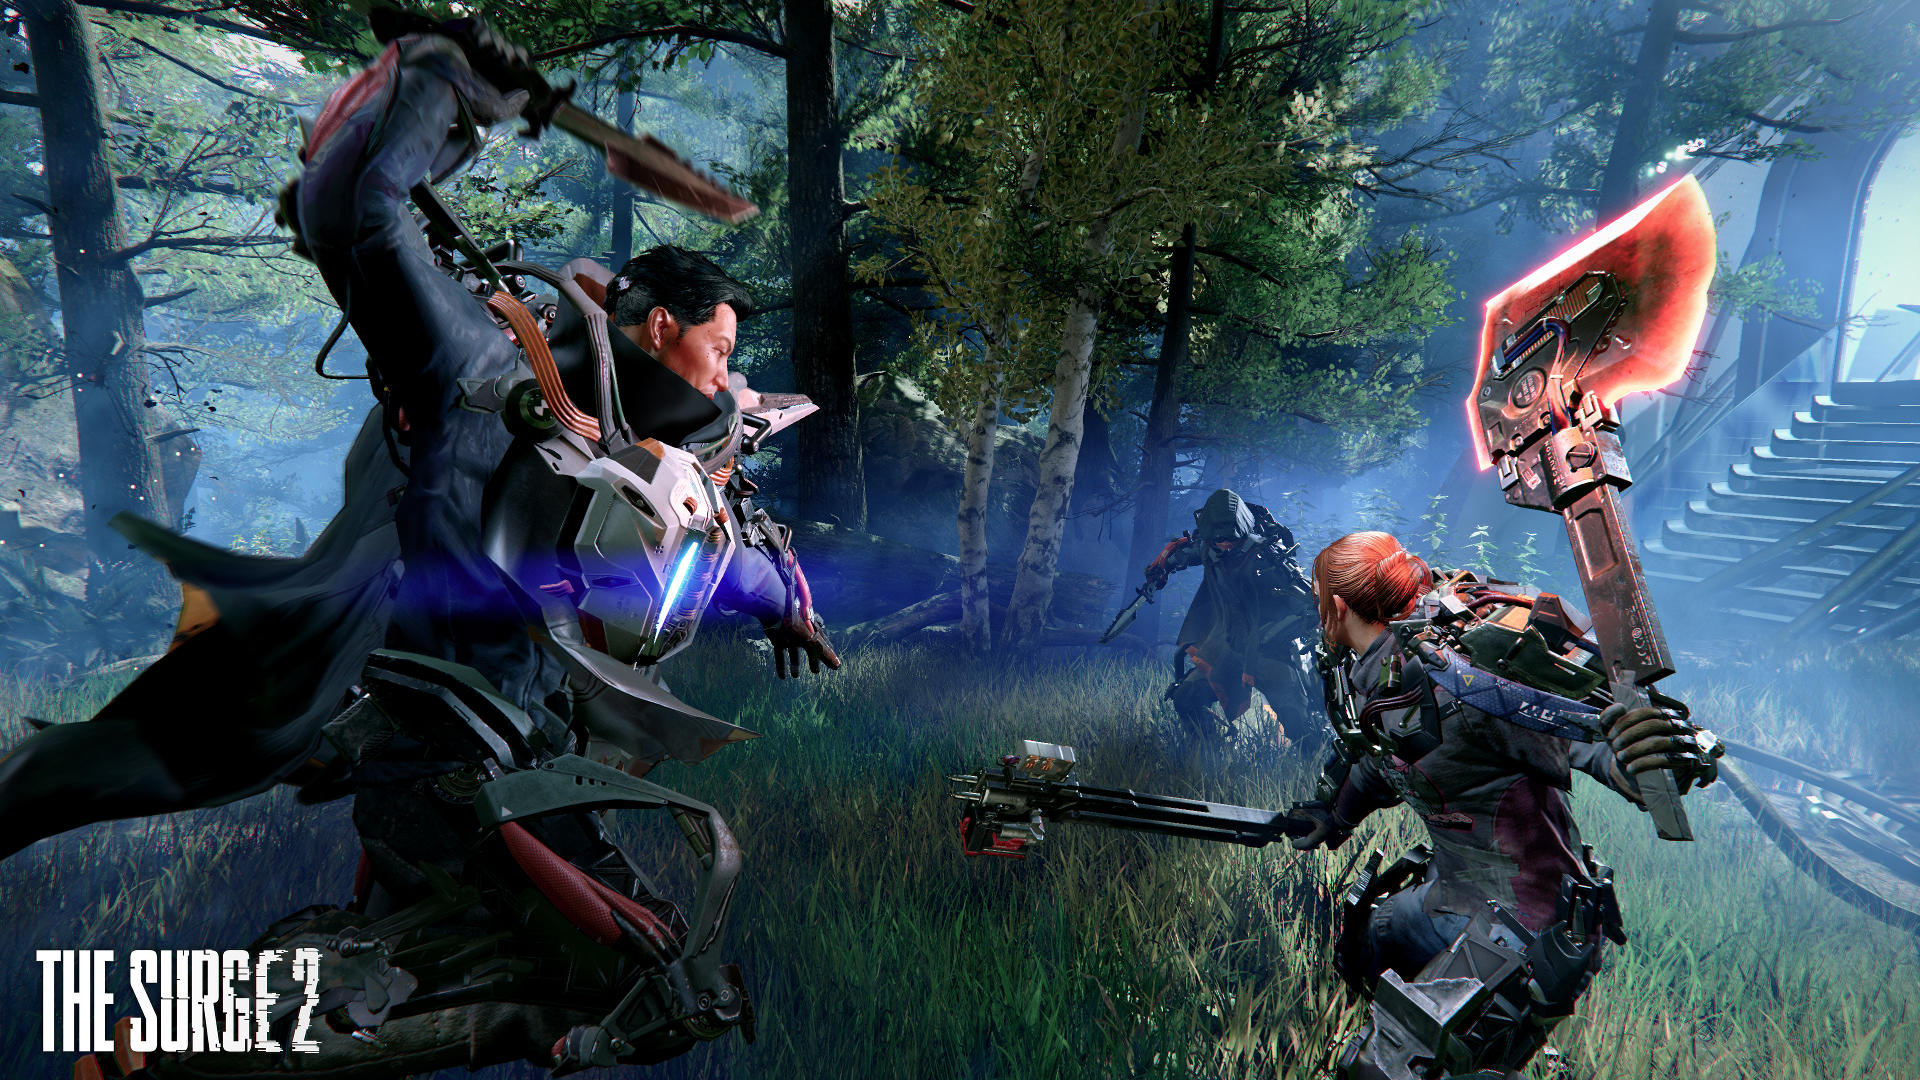 The Surge 2 To Feature Online Elements Indiannoob